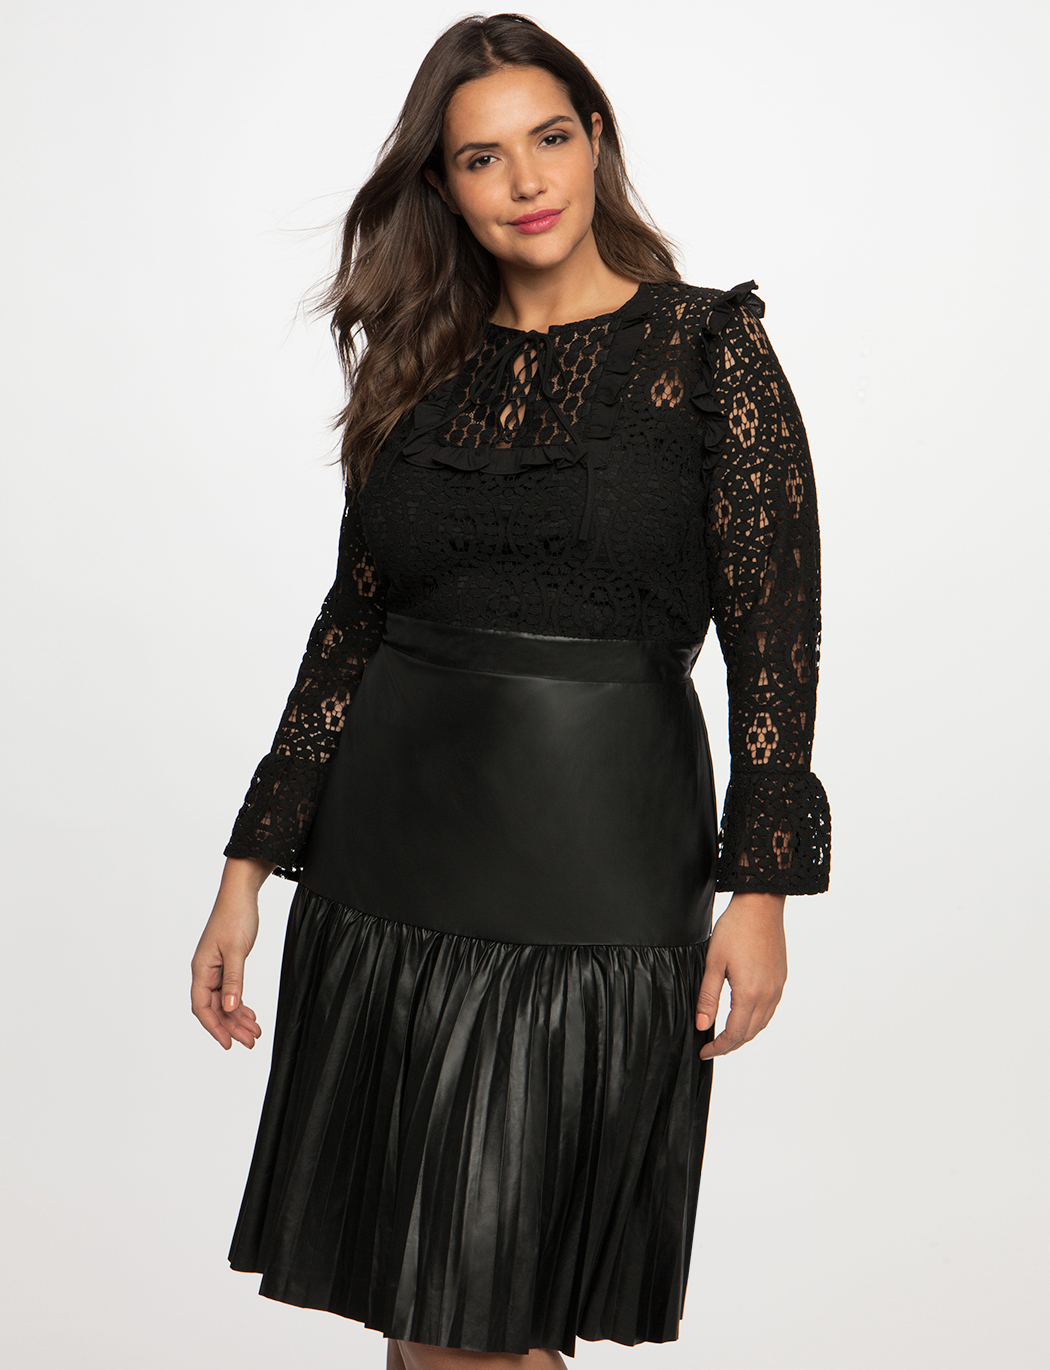 Lace Dress with Pleated Faux Leather Skirt | Women\'s Plus ...